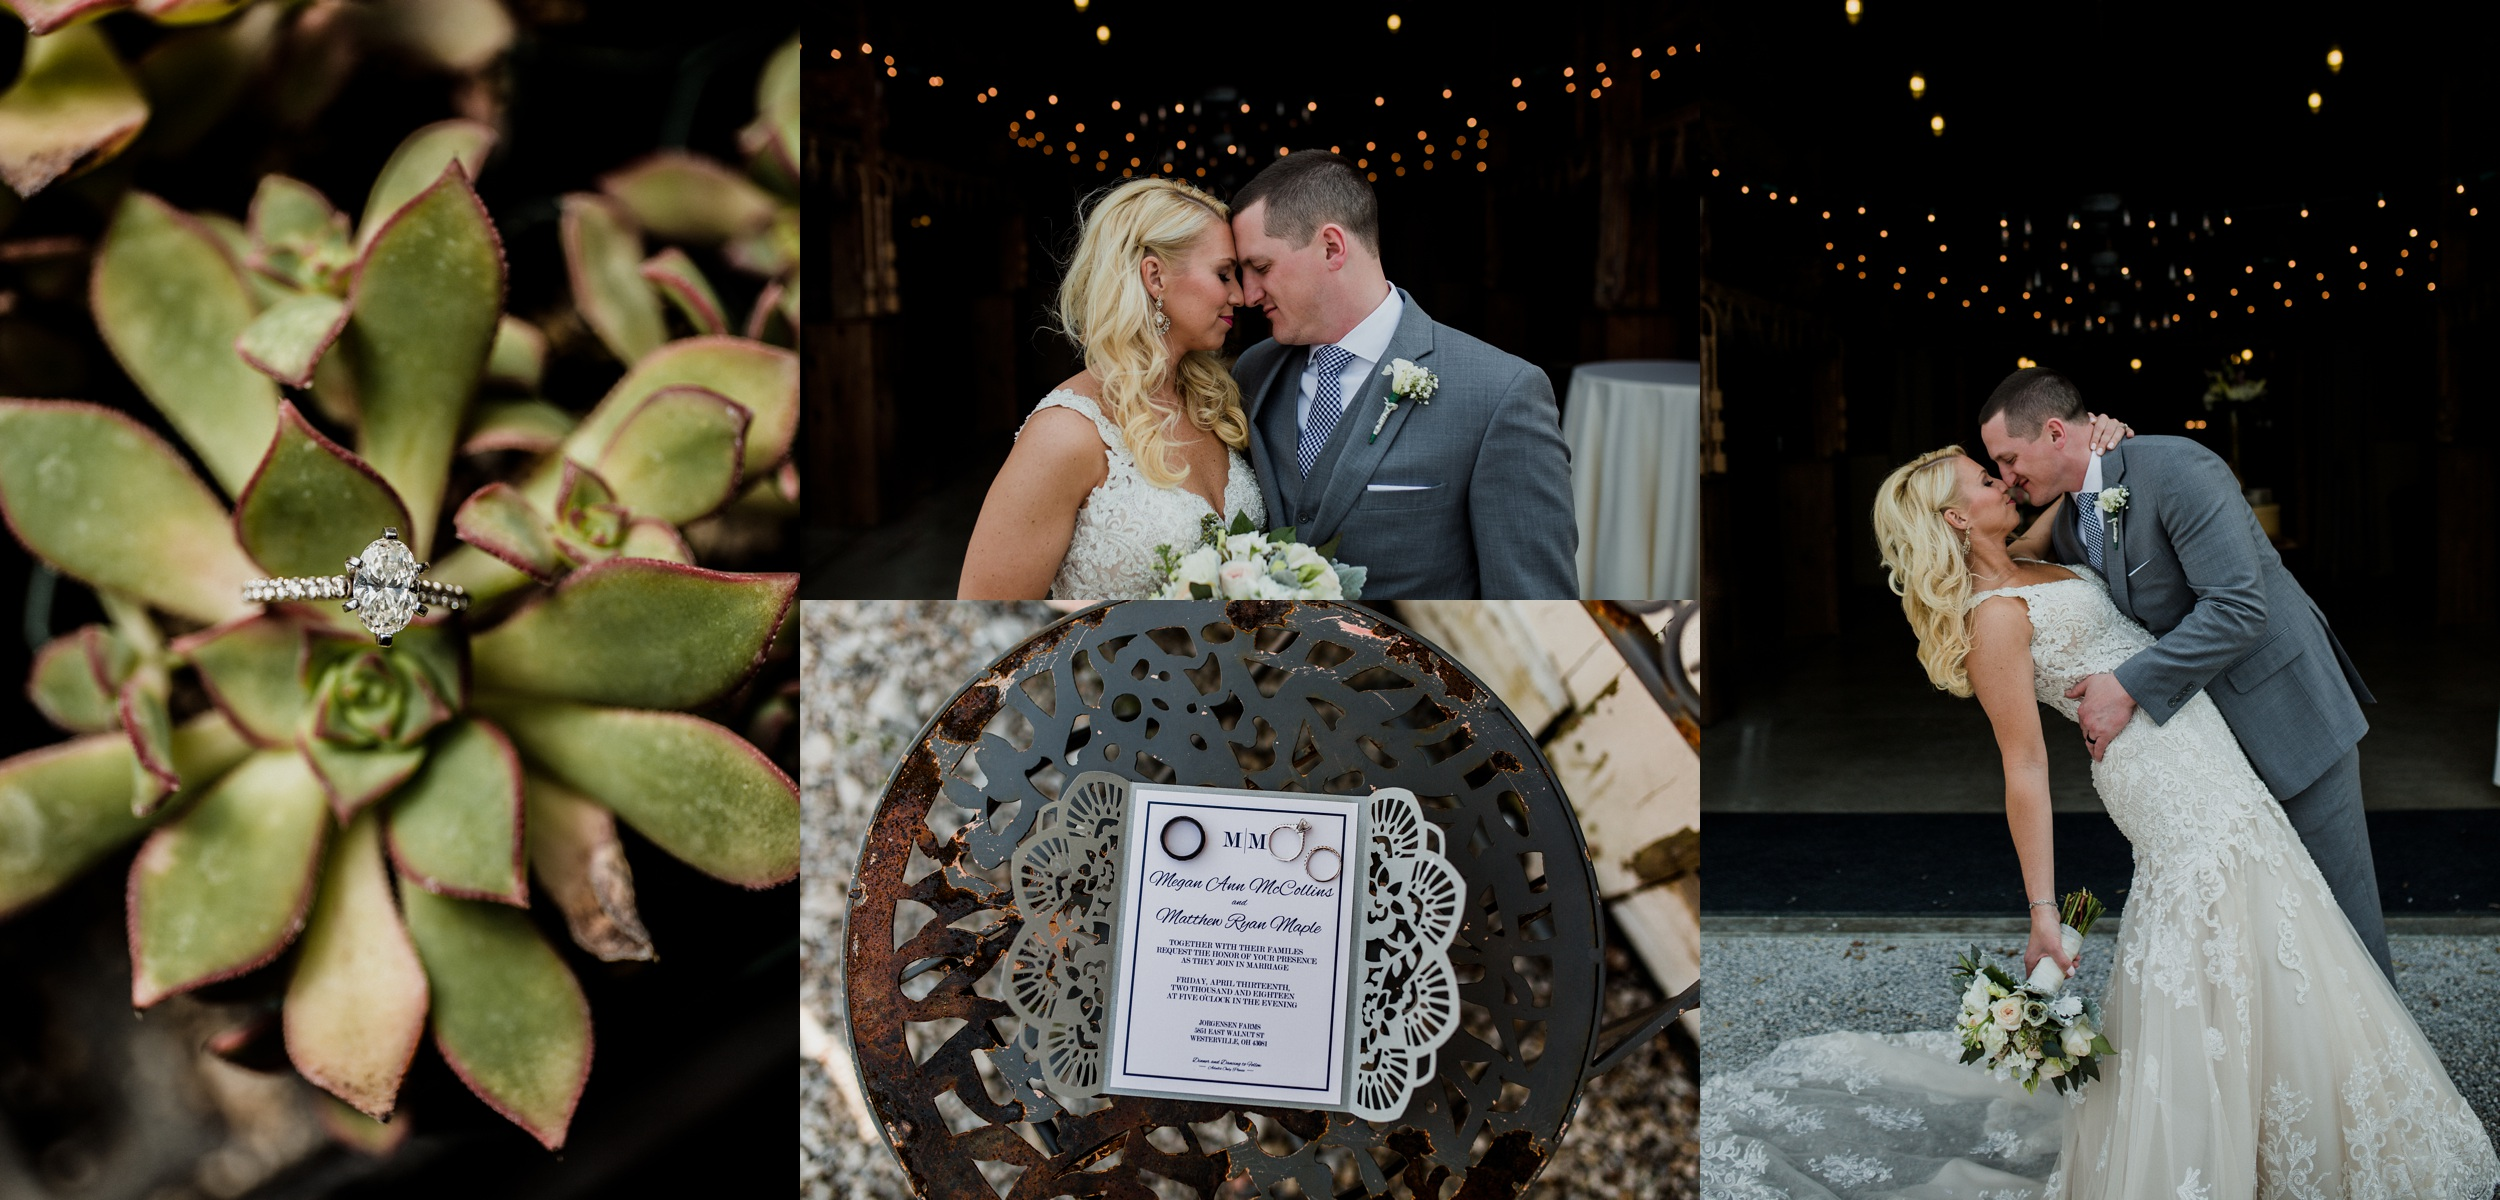 Megan + Matt - A Spring Wedding at Jorgensen Farms